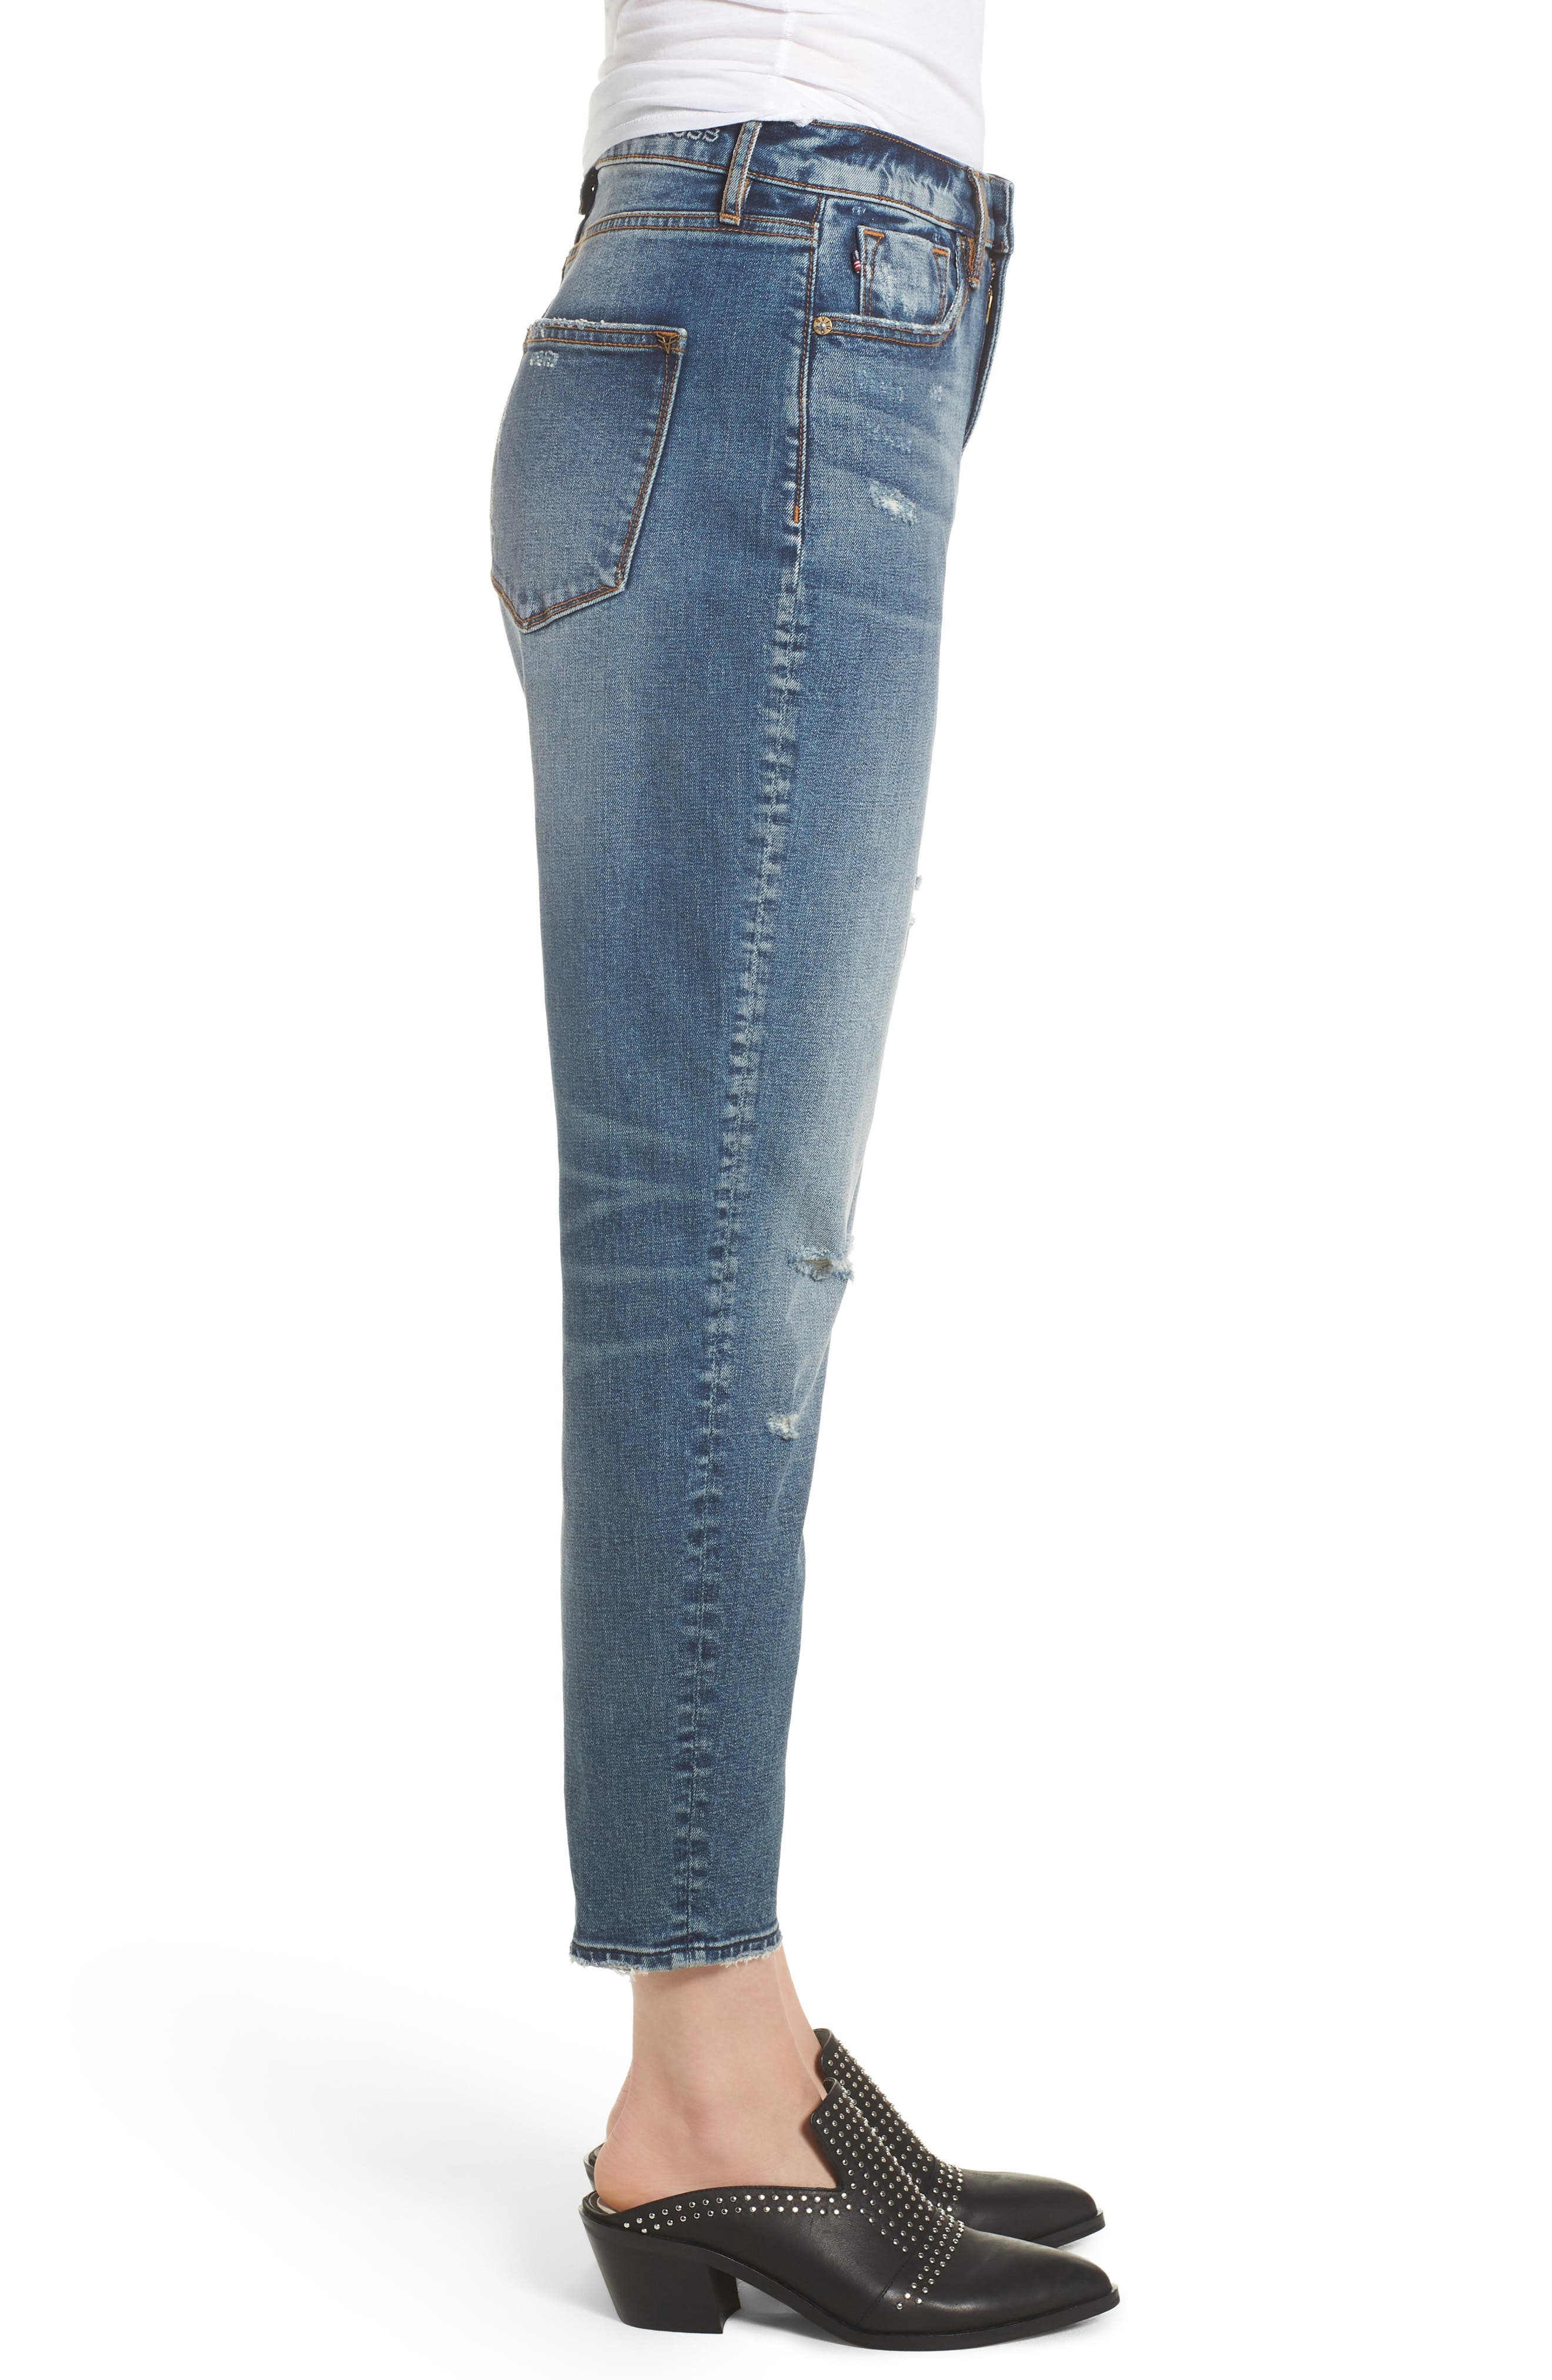 Friday Distressed Tapered Boyfriend Jeans,                             Alternate thumbnail 3, color,                             426